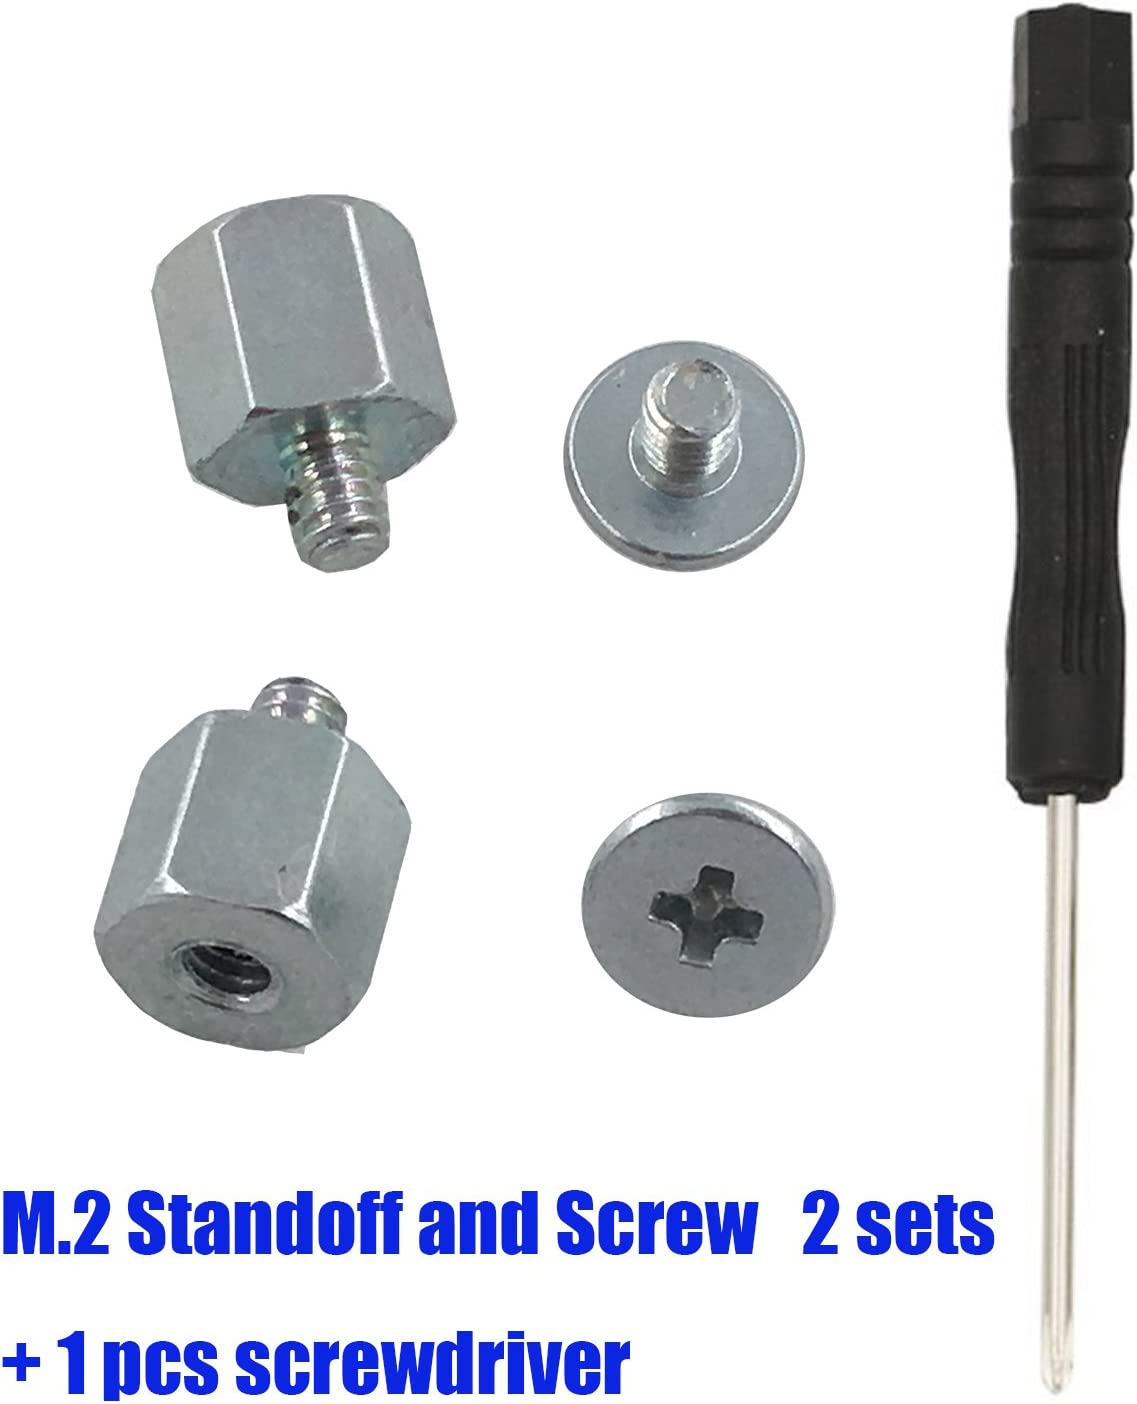 Screwdriver Hex Standoff Spacer ZRM/&E 2 Sets M.2 SSD Screw Kit for M.2 Drives General M.2 Support Motherboard Mounting Accessories Screw